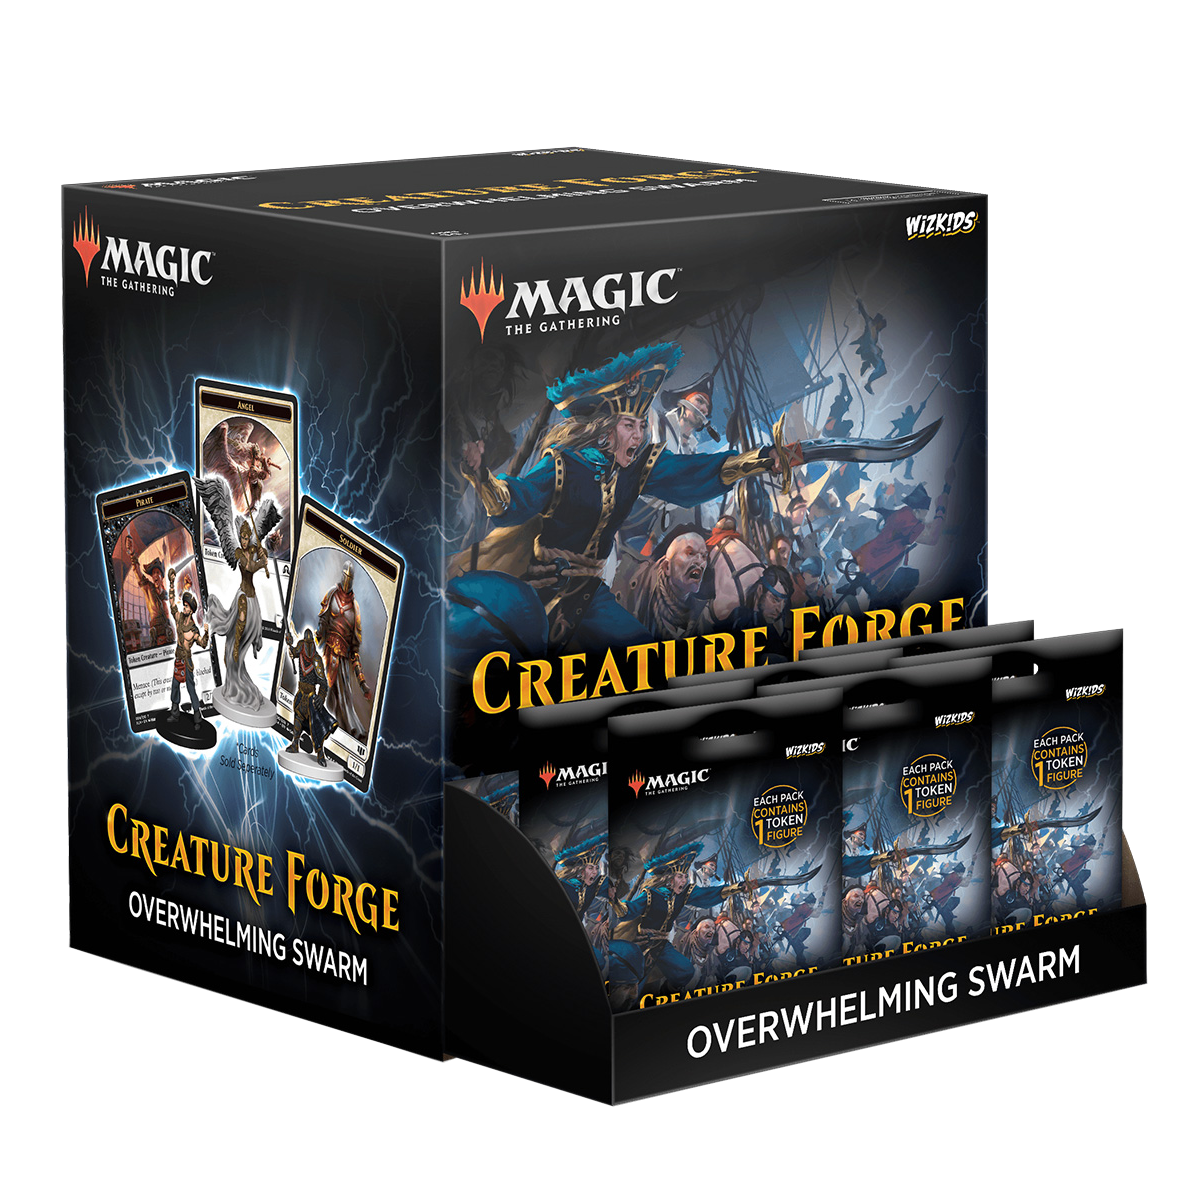 - WizKids Magic Creature Forge Booster Box